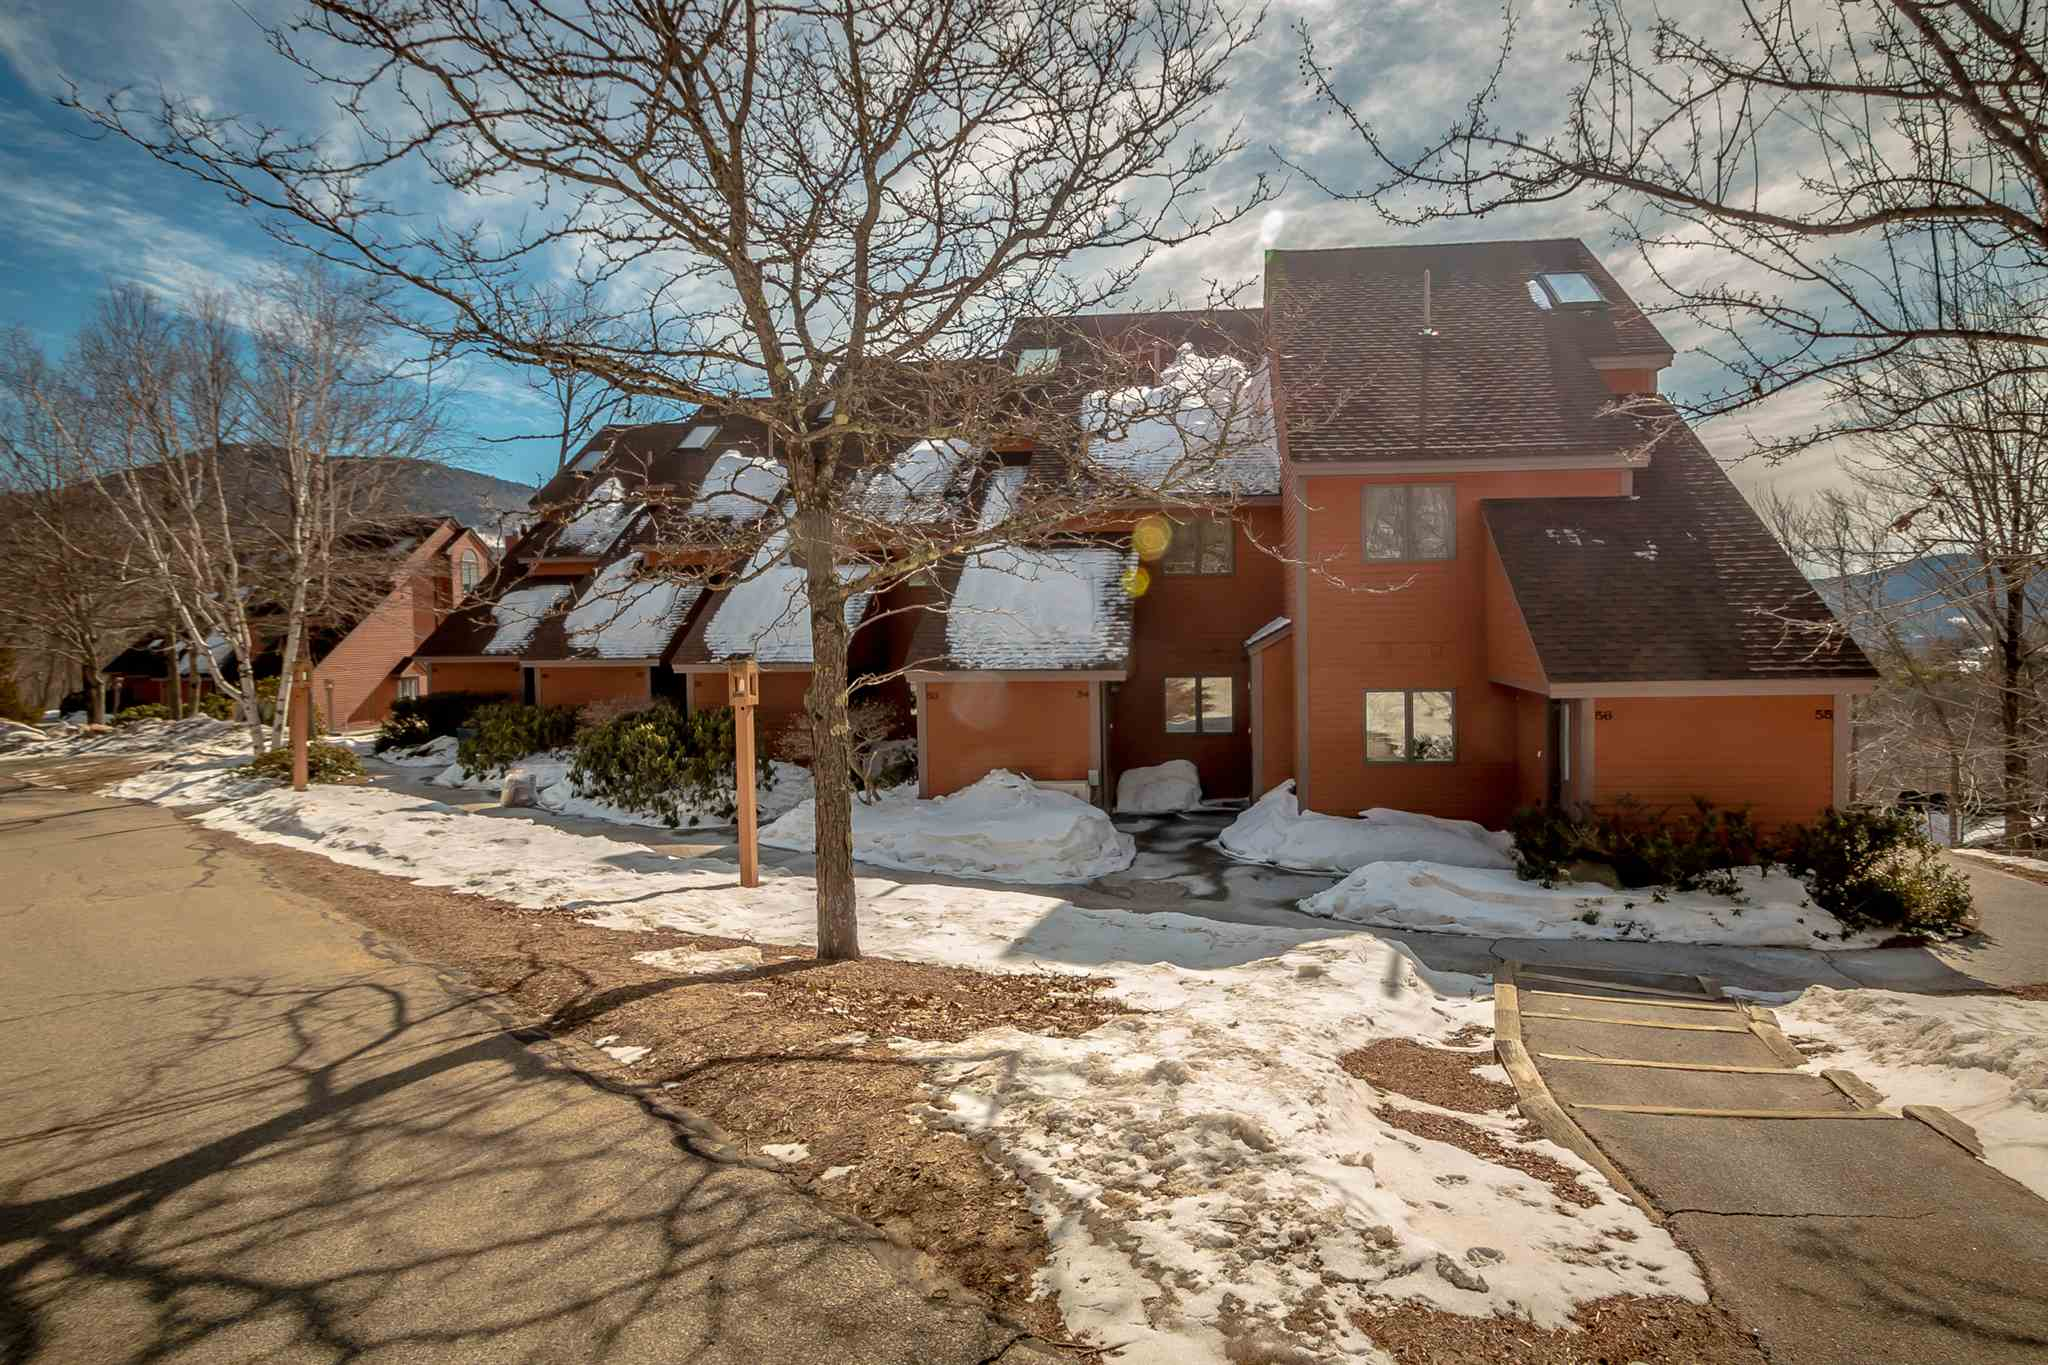 Absolute WOW factor here! Updated owner lock out unit with gas fireplaces & A/C. Gorgeous hickory flooring & granite counters are just a few of the highlights in this townhouse. The first floor has an open kitchen, living & dining area, full bath and bedroom. Great balcony off of the living room to enjoy the remarkable mountain views. The lower level has a 2nd living room that walks out onto the grounds. It has a beautiful kitchenette, gas fireplace, large bedroom and full bath with a jacuzzi tub. Enjoy both levels yourself or use one, rent the other or rent both. Nordic Village is known for its outstanding amenities & over 100 acres of landscaped grounds. Enjoy the indoor pool & jacuzzi, 2 outdoor pools & jacuzzi (heated all winter) tennis, playground, recreation room, row boating & more. The winter offers ice skating, sledding & campfires, all onsite. Attitash, Wildcat, Black Mt. all within a short drive. Downtown N. Conway only 7 miles away.